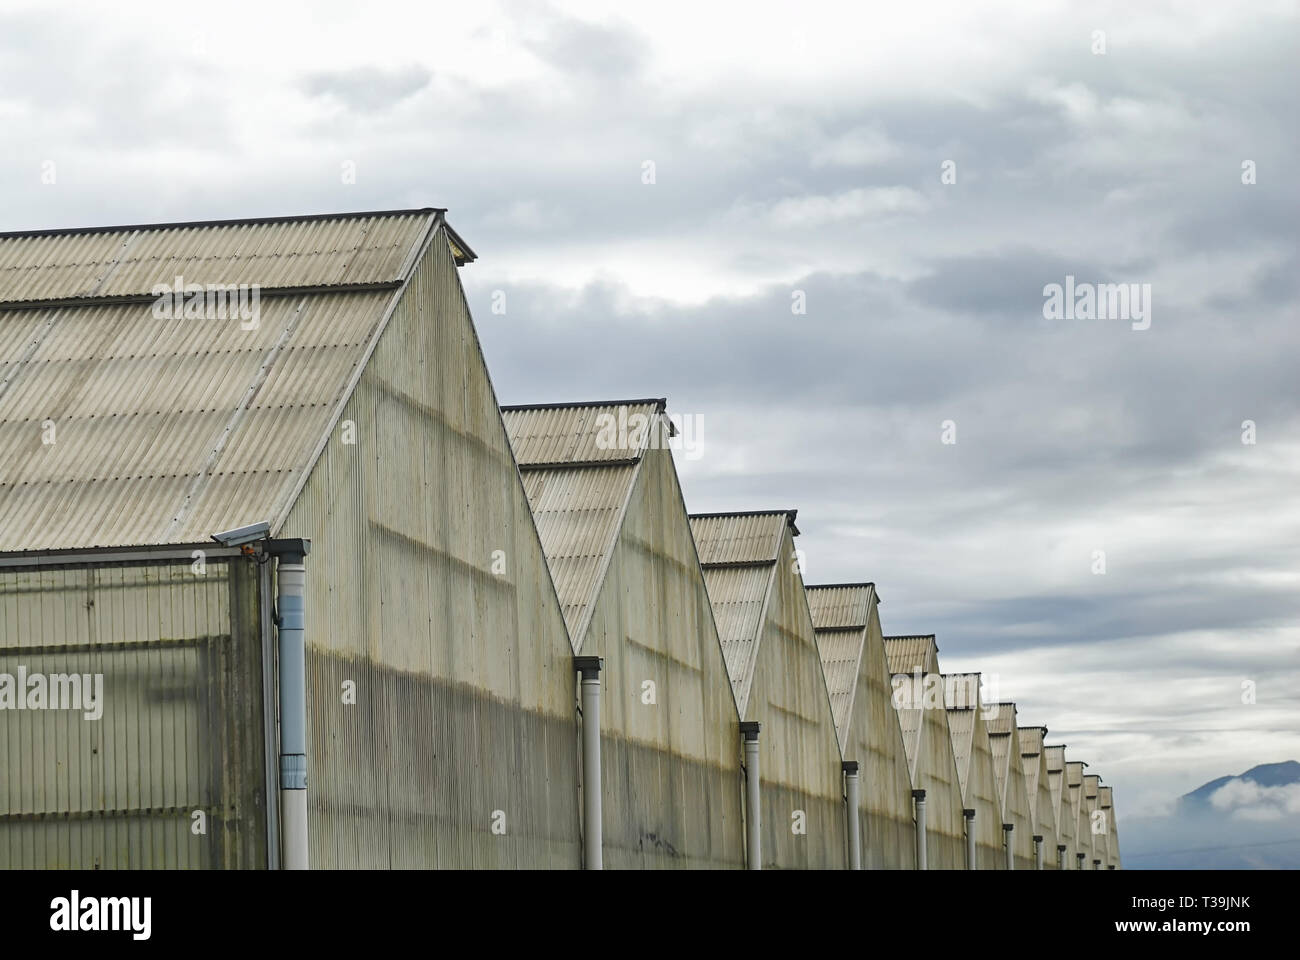 A row of gable roof greenhouses receding into the distance. - Stock Image